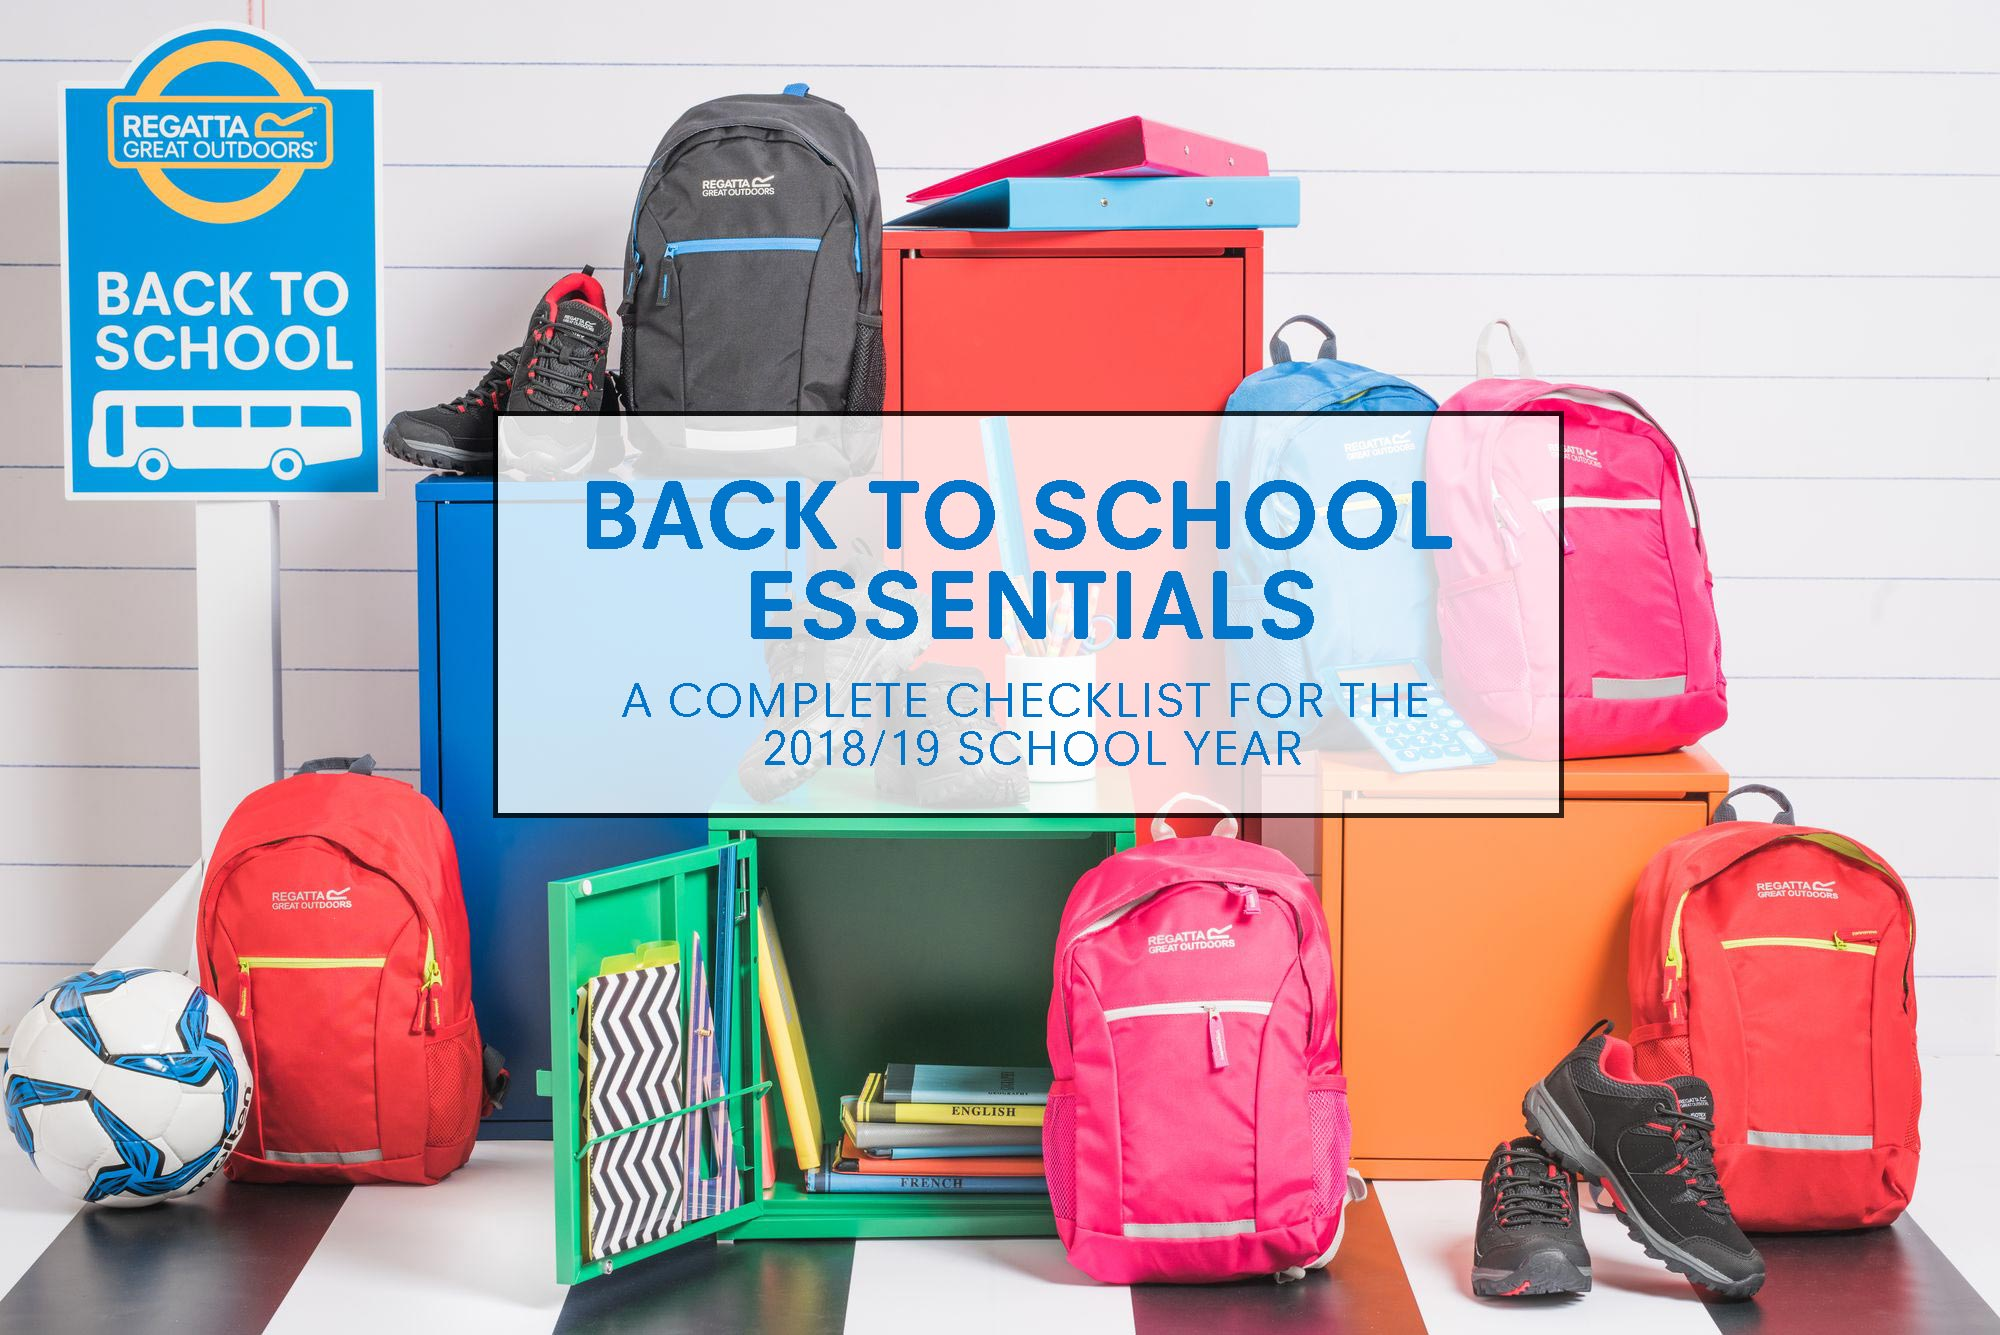 272b7682b983 back to school checklist banner